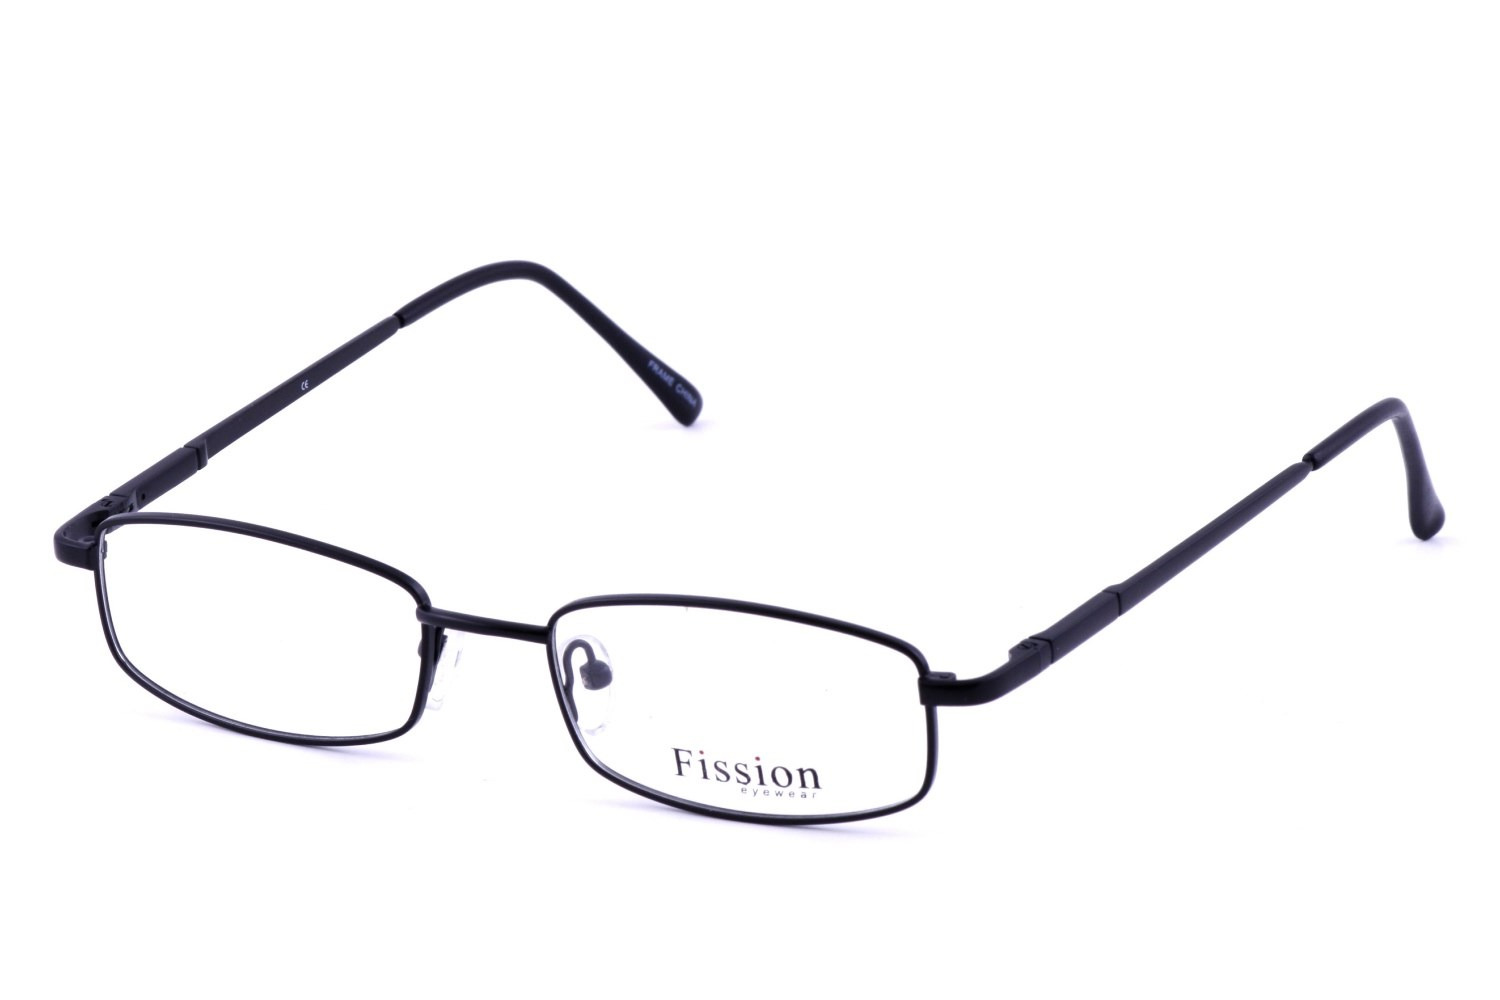 Fission 005 Prescription Eyeglasses Frames